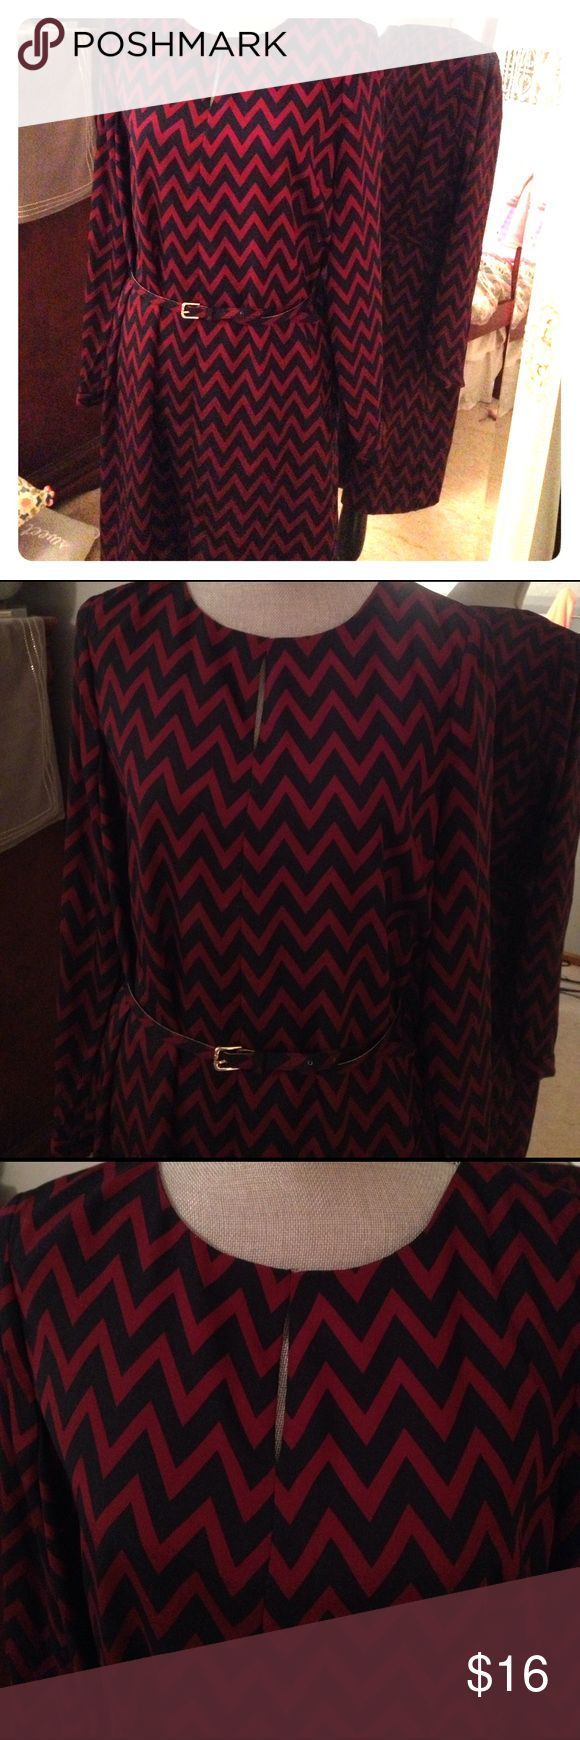 Burgundy and navy chevron dress Belt included. Small slit at chest. Long sleeves. 100% polyester. Zip up back. Worn once The Limited Dresses Long Sleeve